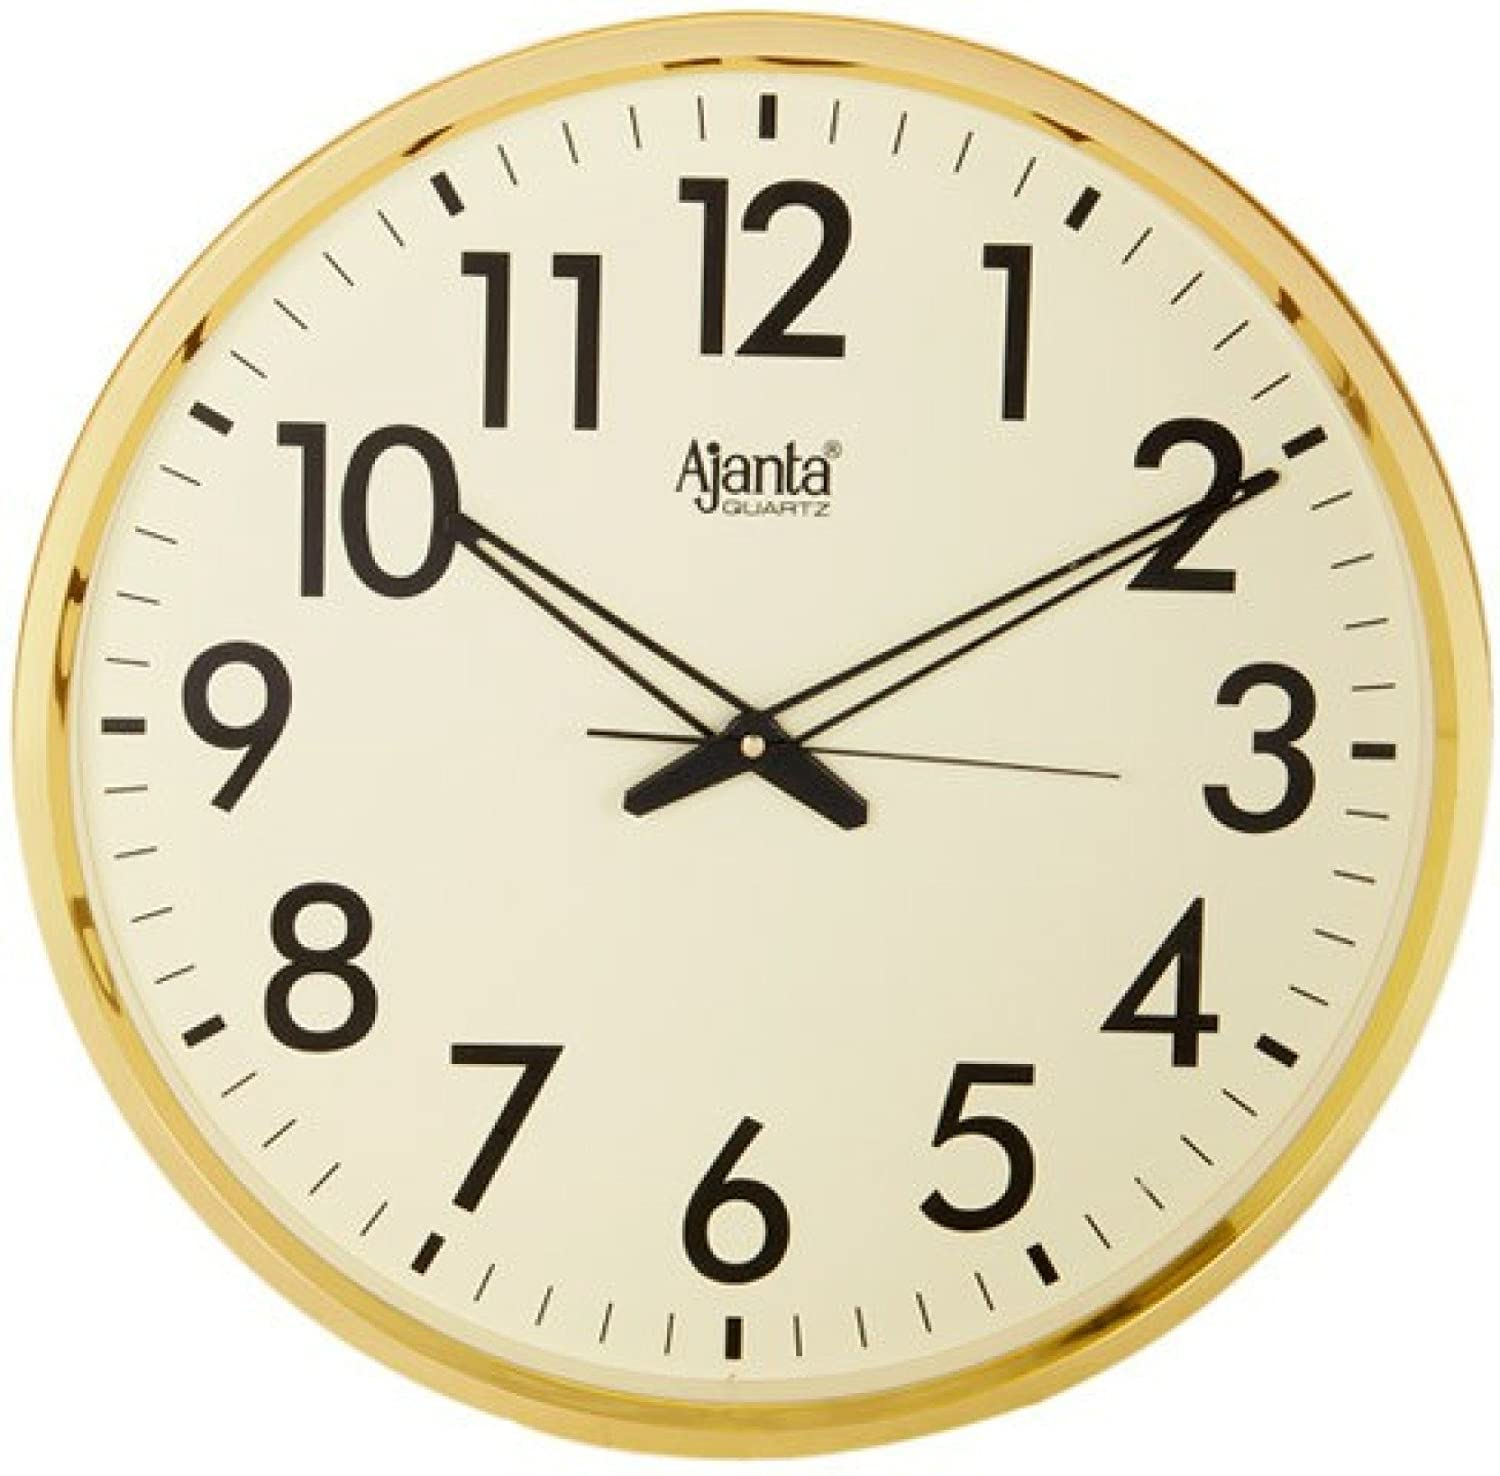 Buy ajanta quartz wall clock 32 cm x 32 cm x 2 cm white dial and buy ajanta quartz wall clock 32 cm x 32 cm x 2 cm white dial and silver rim online at low prices in india amazon amipublicfo Images